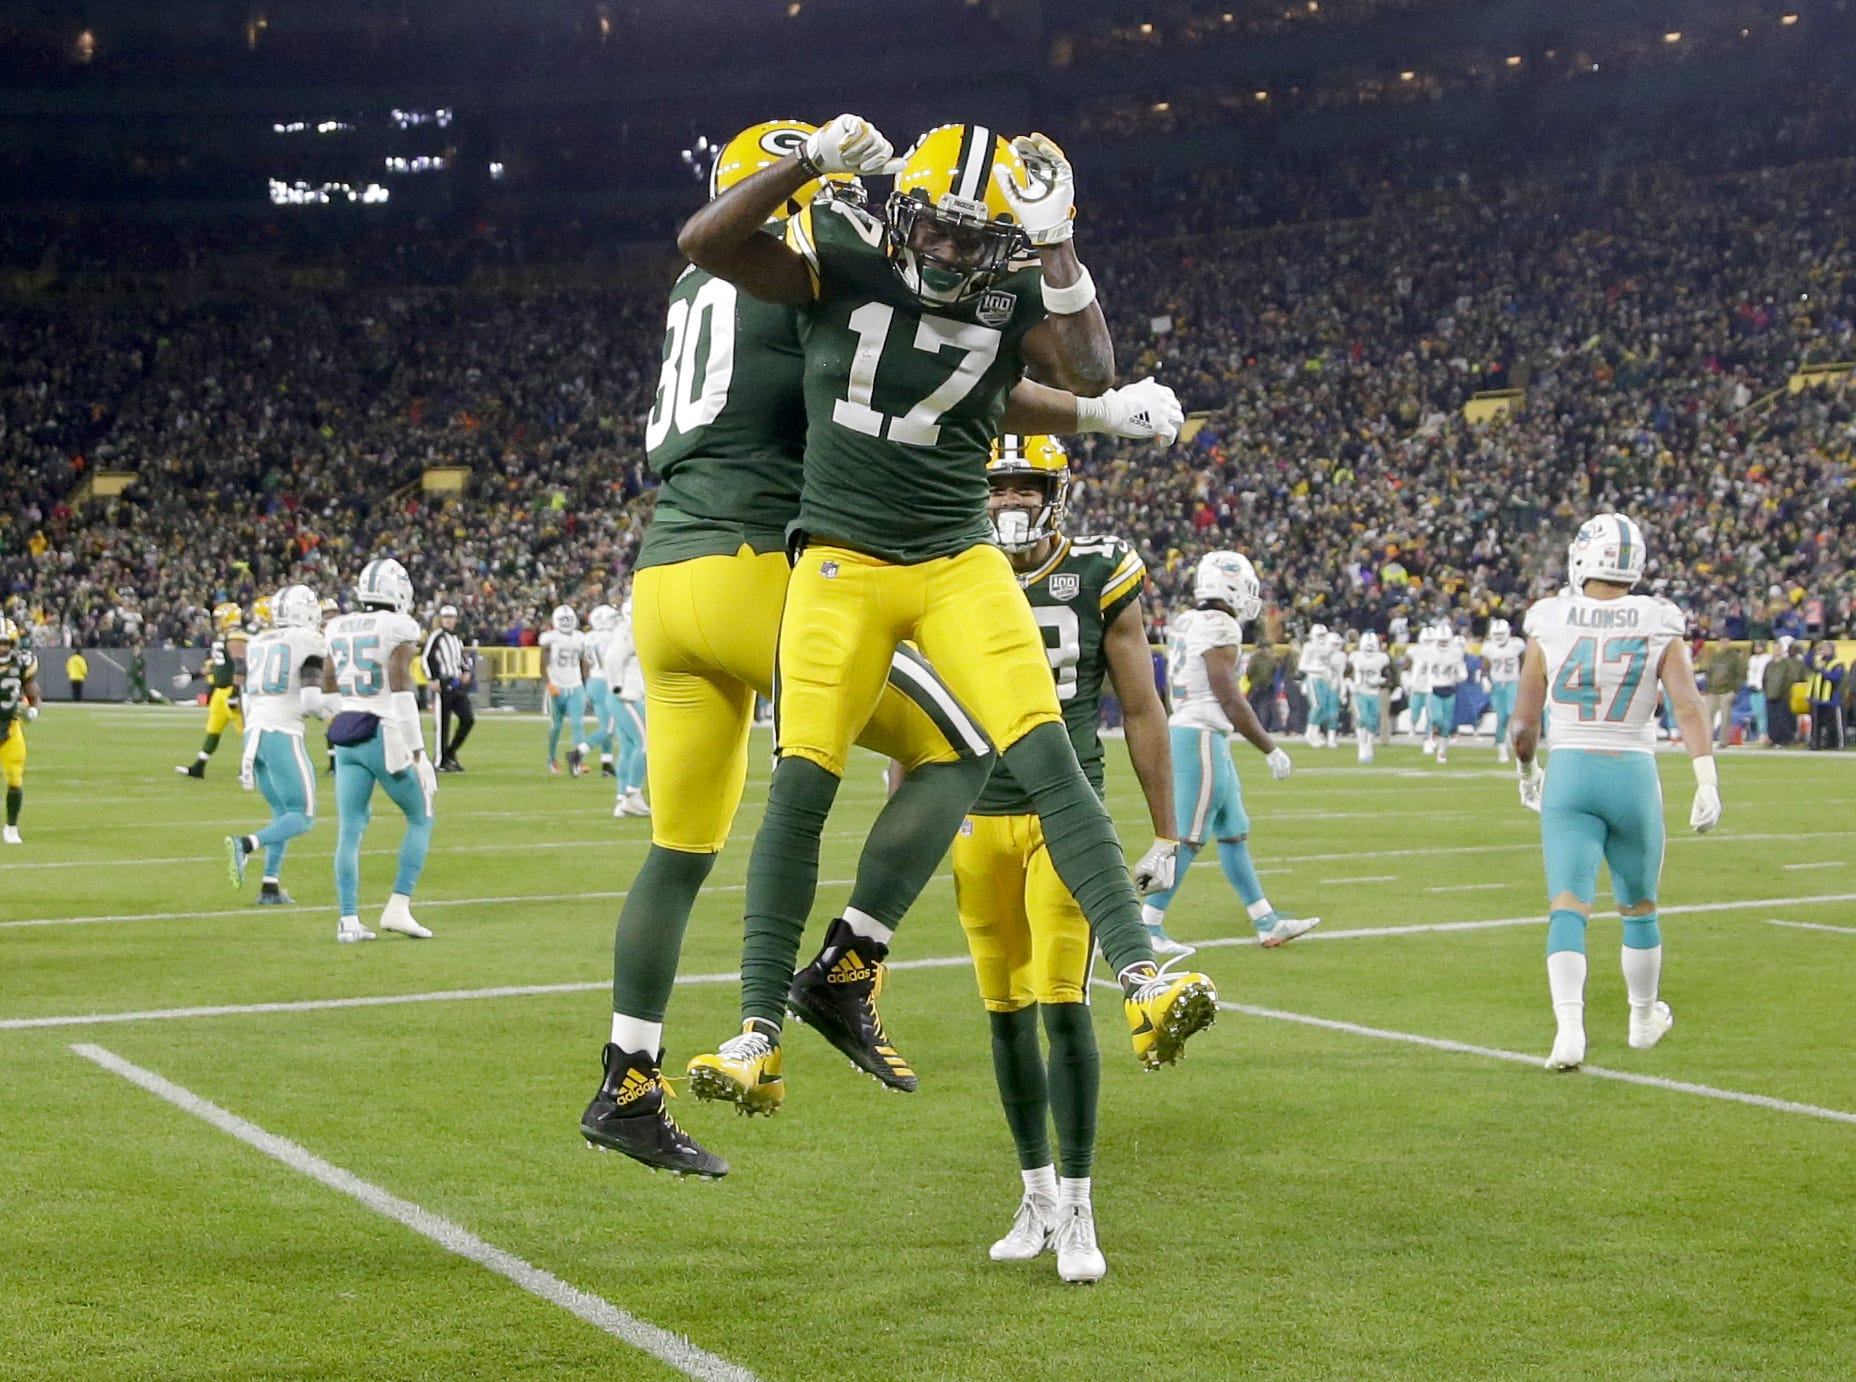 Packers Podcast: A needed win, but now a trip to Seattle on a short week